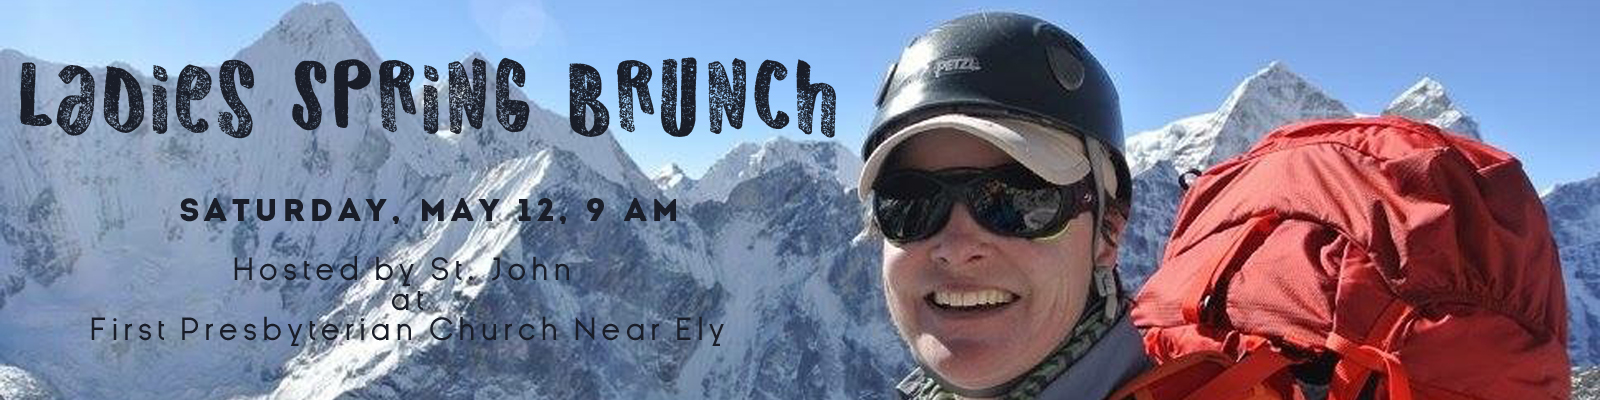 Join us for our Annual Ladies Spring Brunch Hosted by St. John Lutheran Church in Ely at First Presbyterian Church Near Ely as we listen to the stories of Jen Loeb, a local woman who has trekked to the top of Mt. Everest.